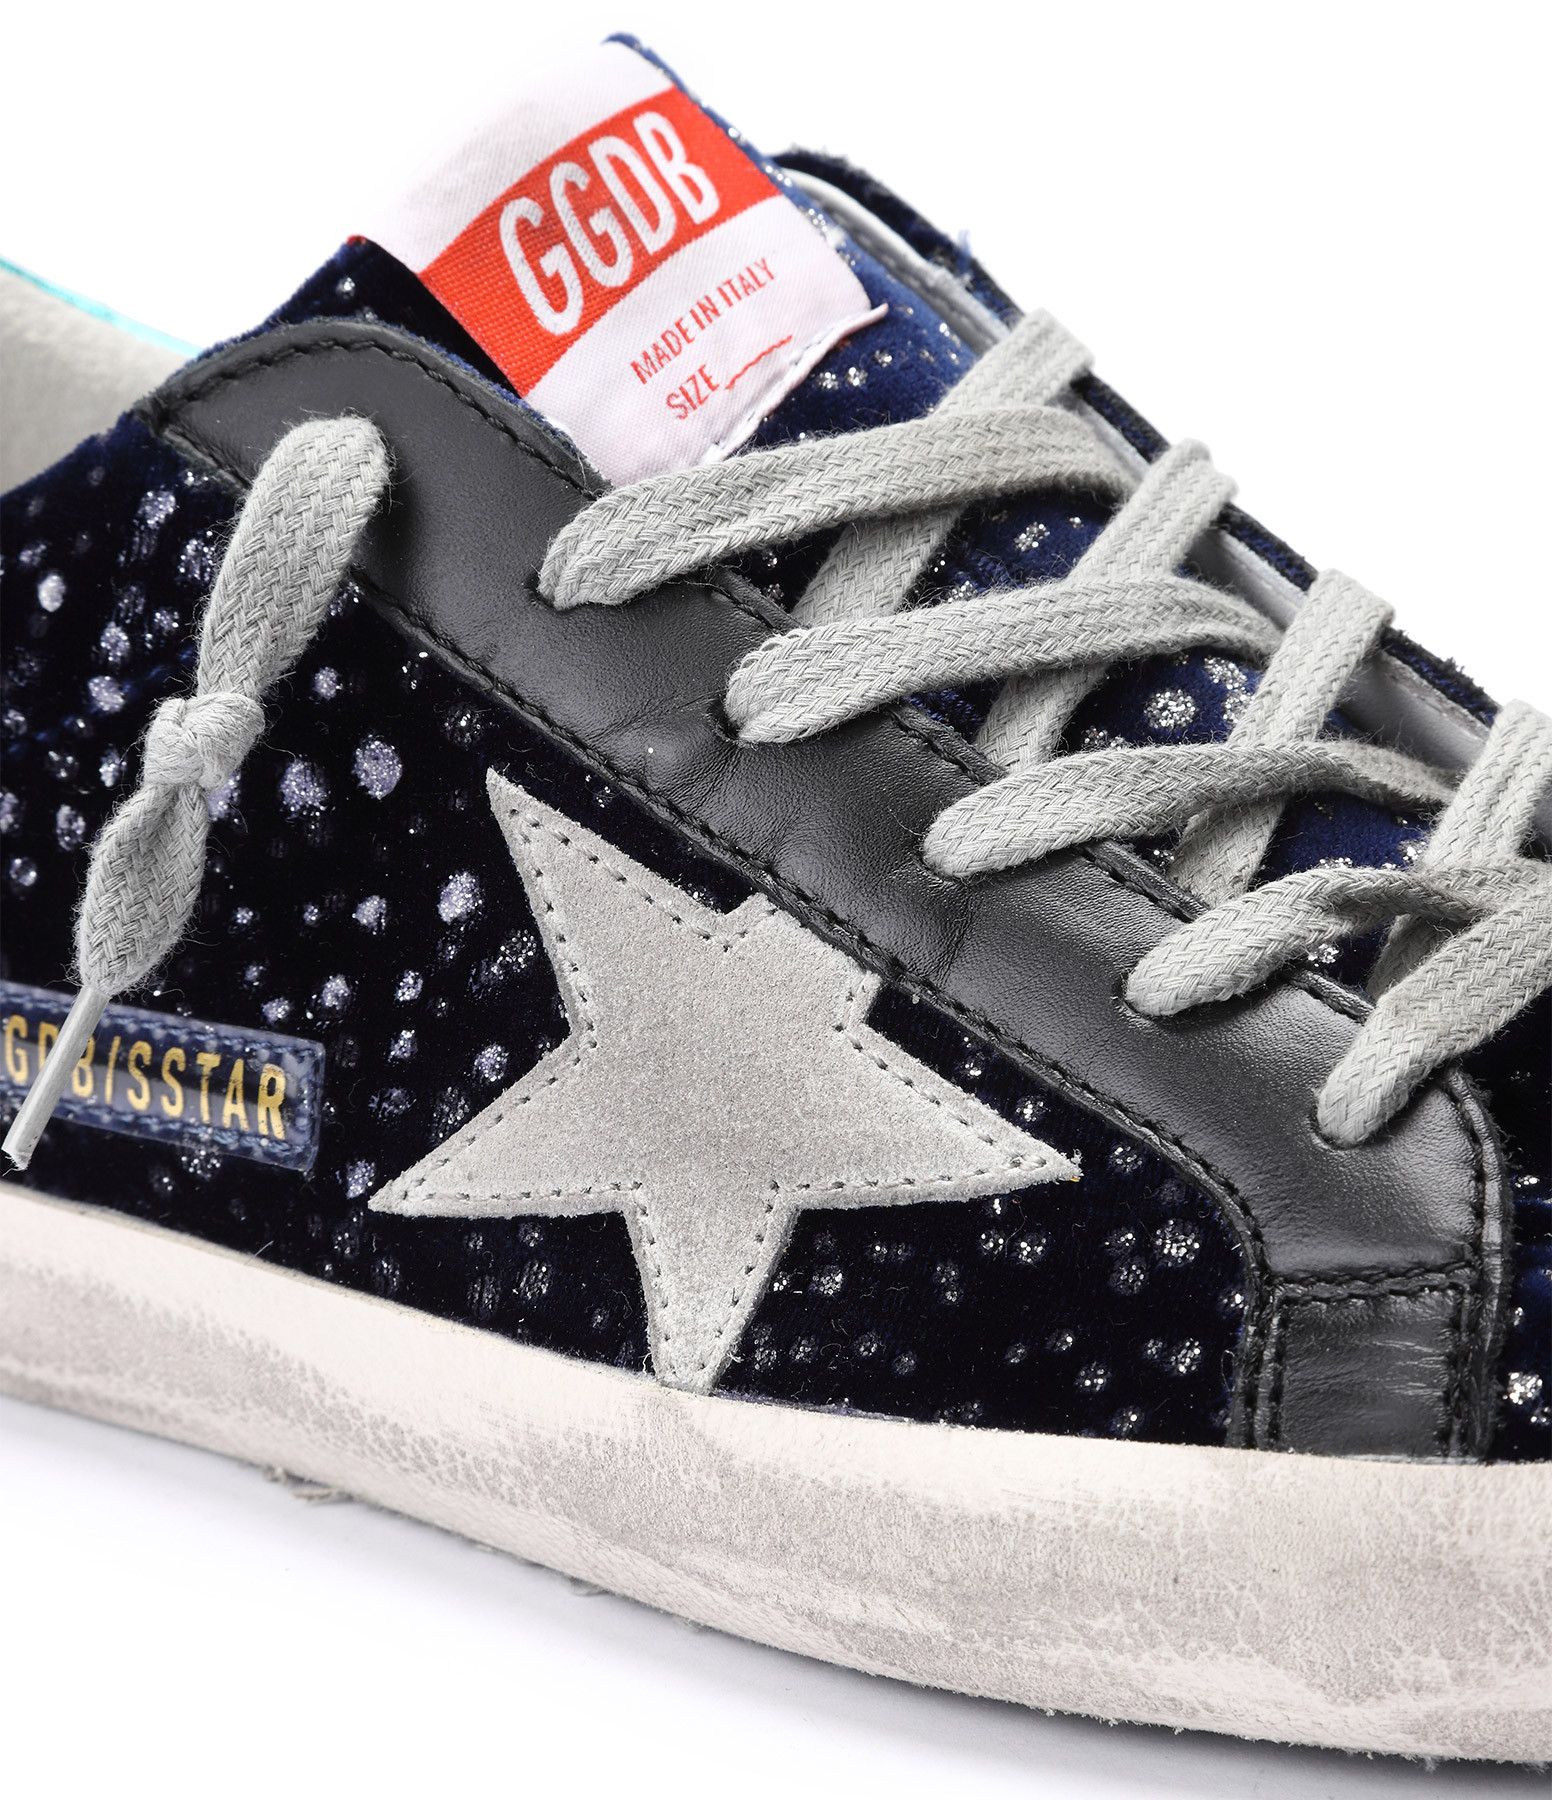 GOLDEN GOOSE - Baskets Superstar Cuir Velours Paillettes Turquoise